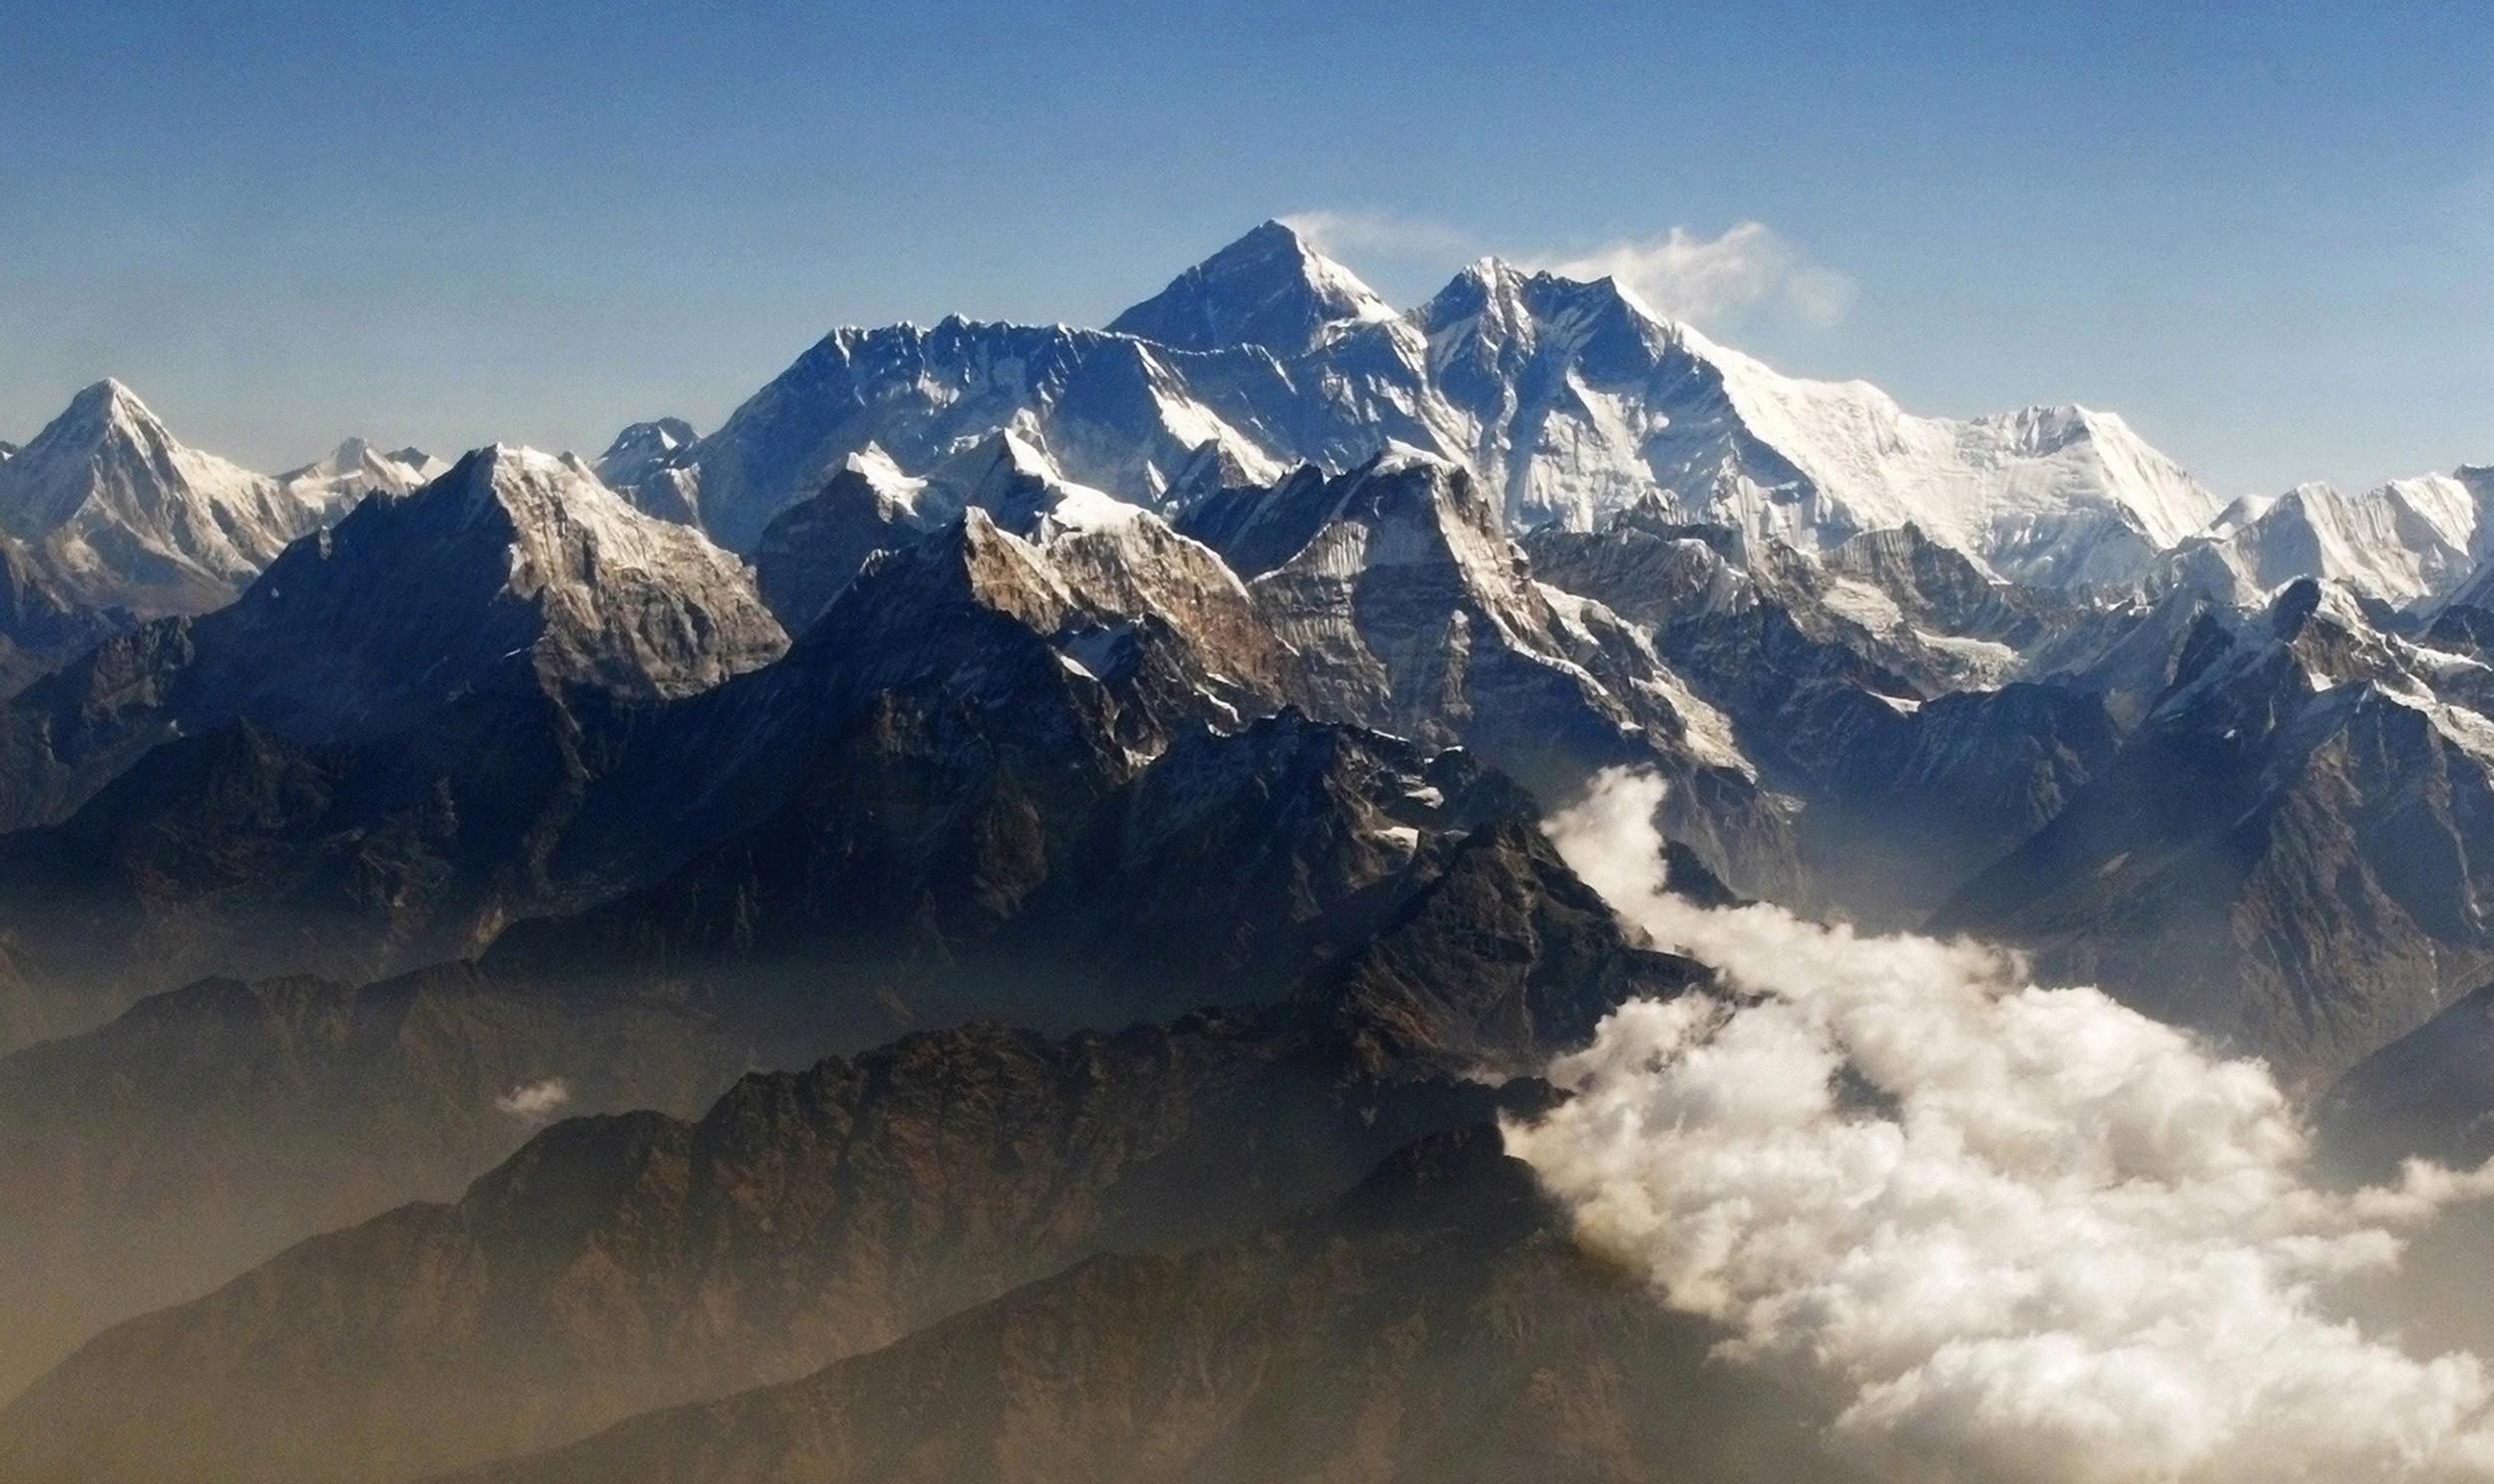 Image: Mount Everest and other peaks of the Himalayan range seen from the air